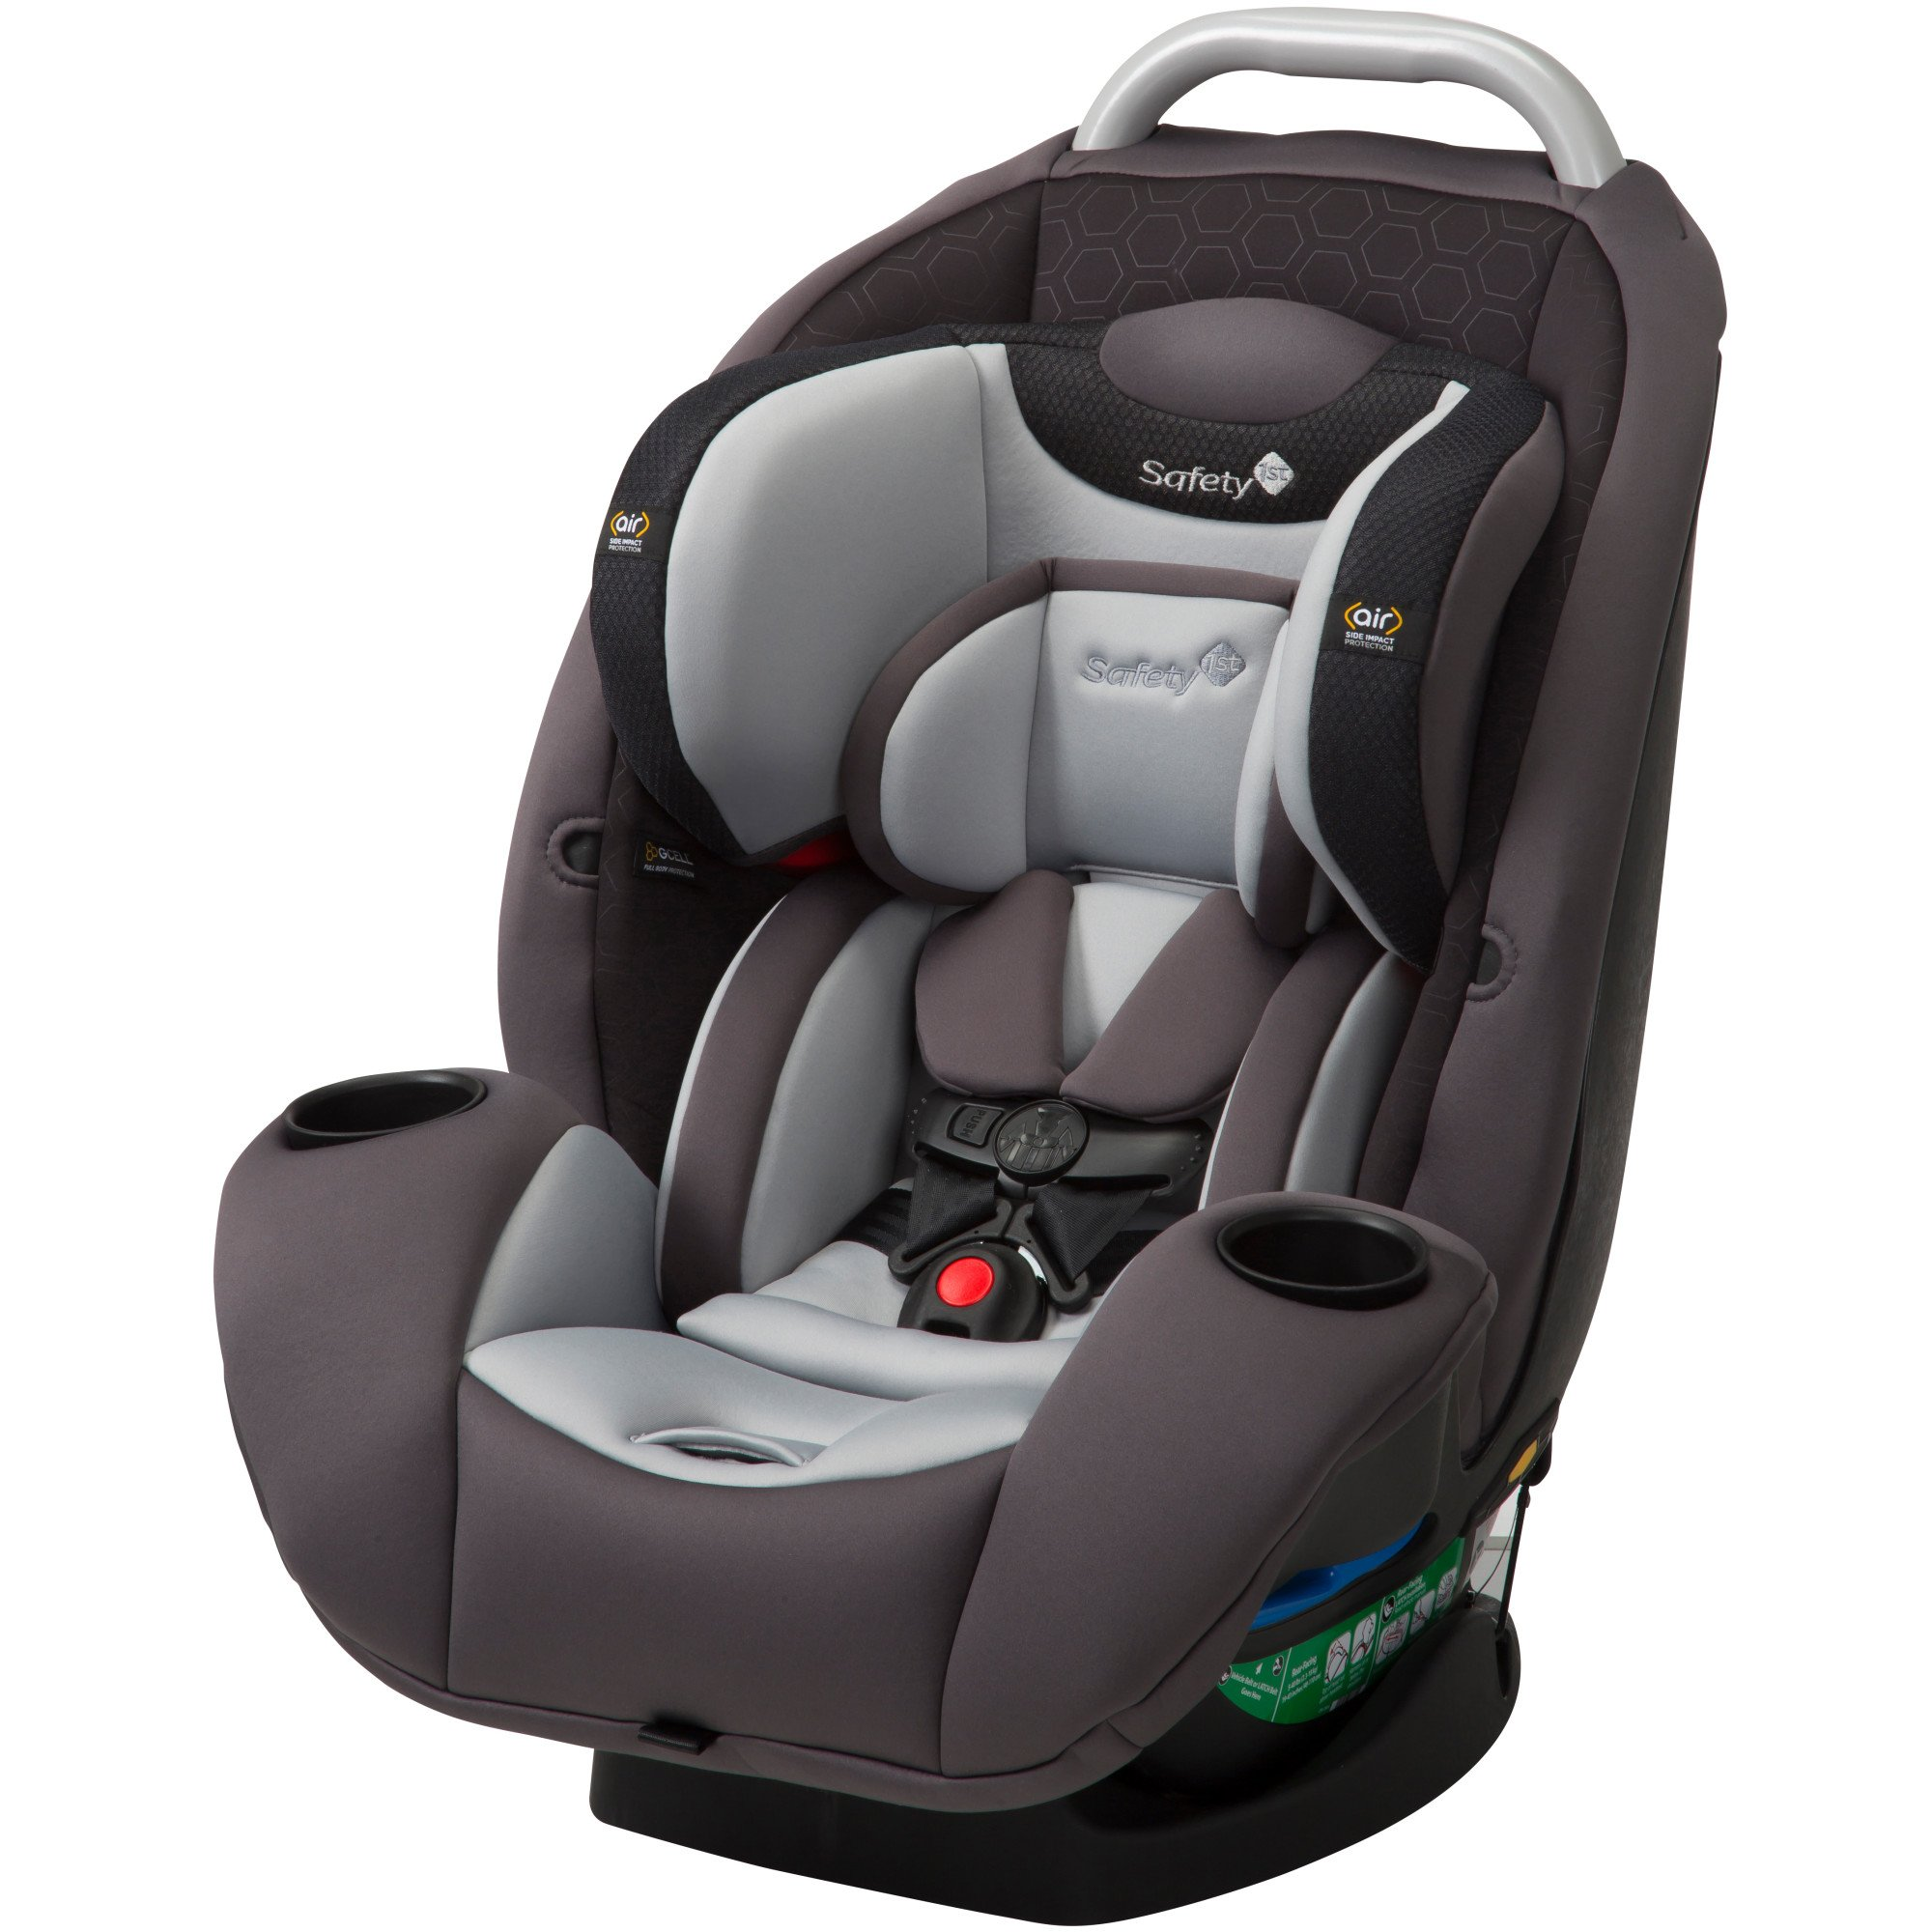 Safety 1st Ultramax Air 360 4-in-1 Convertible Car Seat, Raven HX